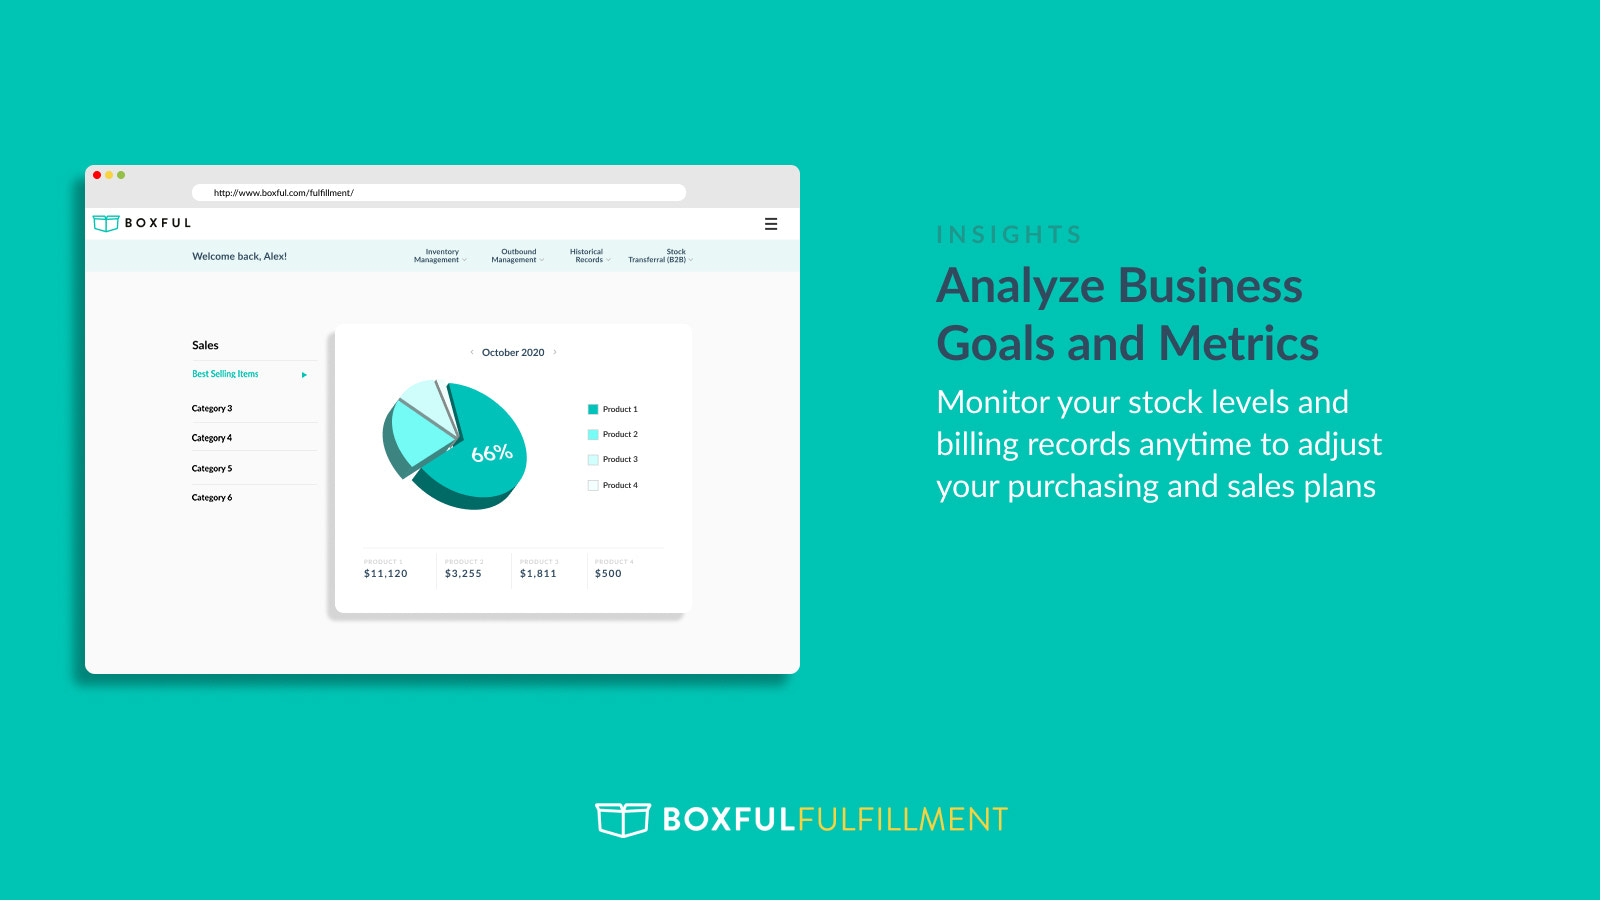 Monitor your stock levels and bills to adjust sales plans